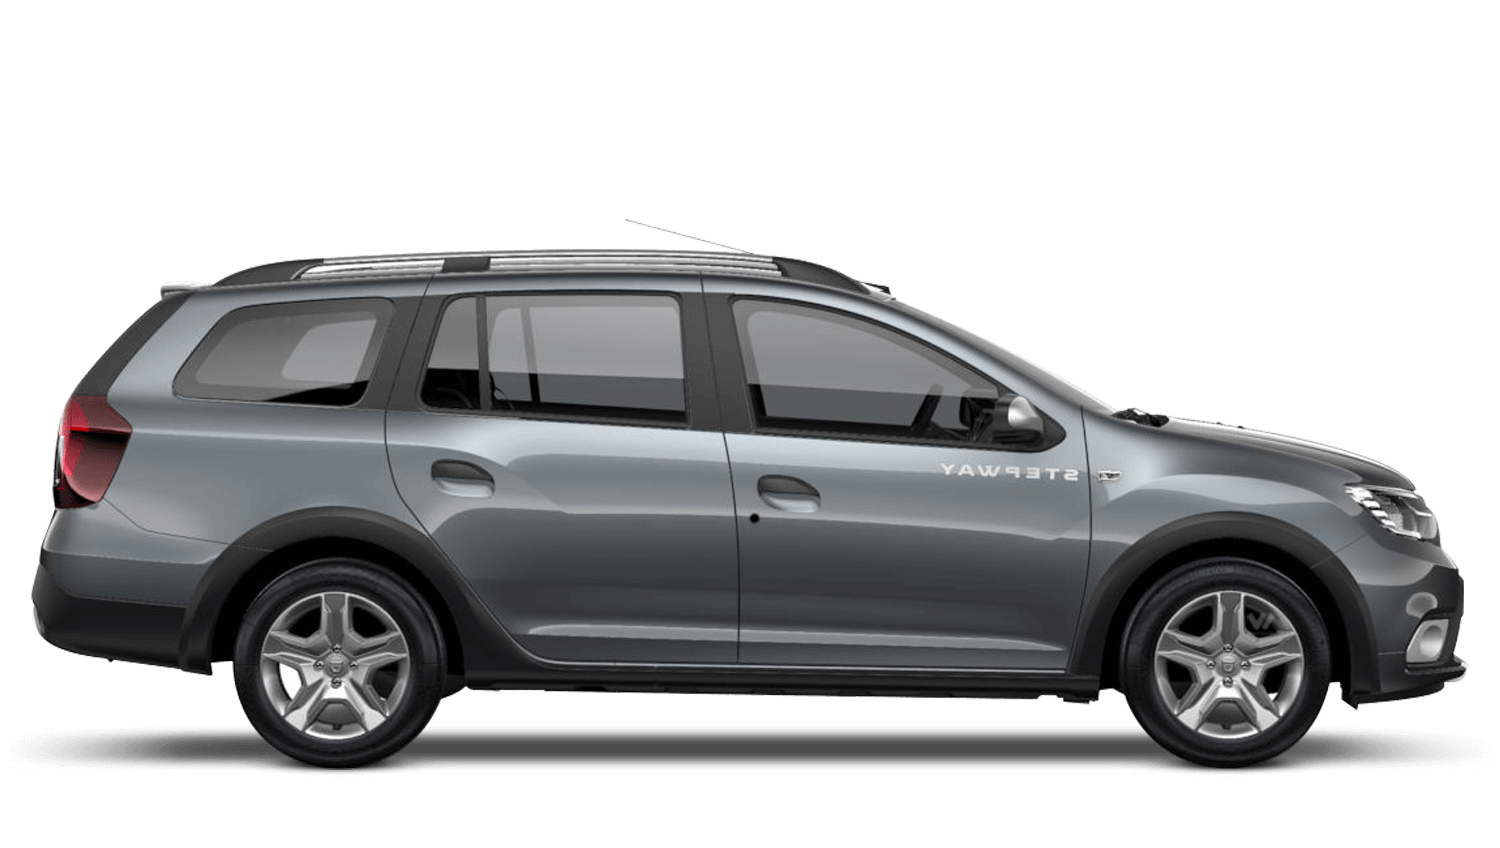 Logan Mcv Stepway New Car Offers